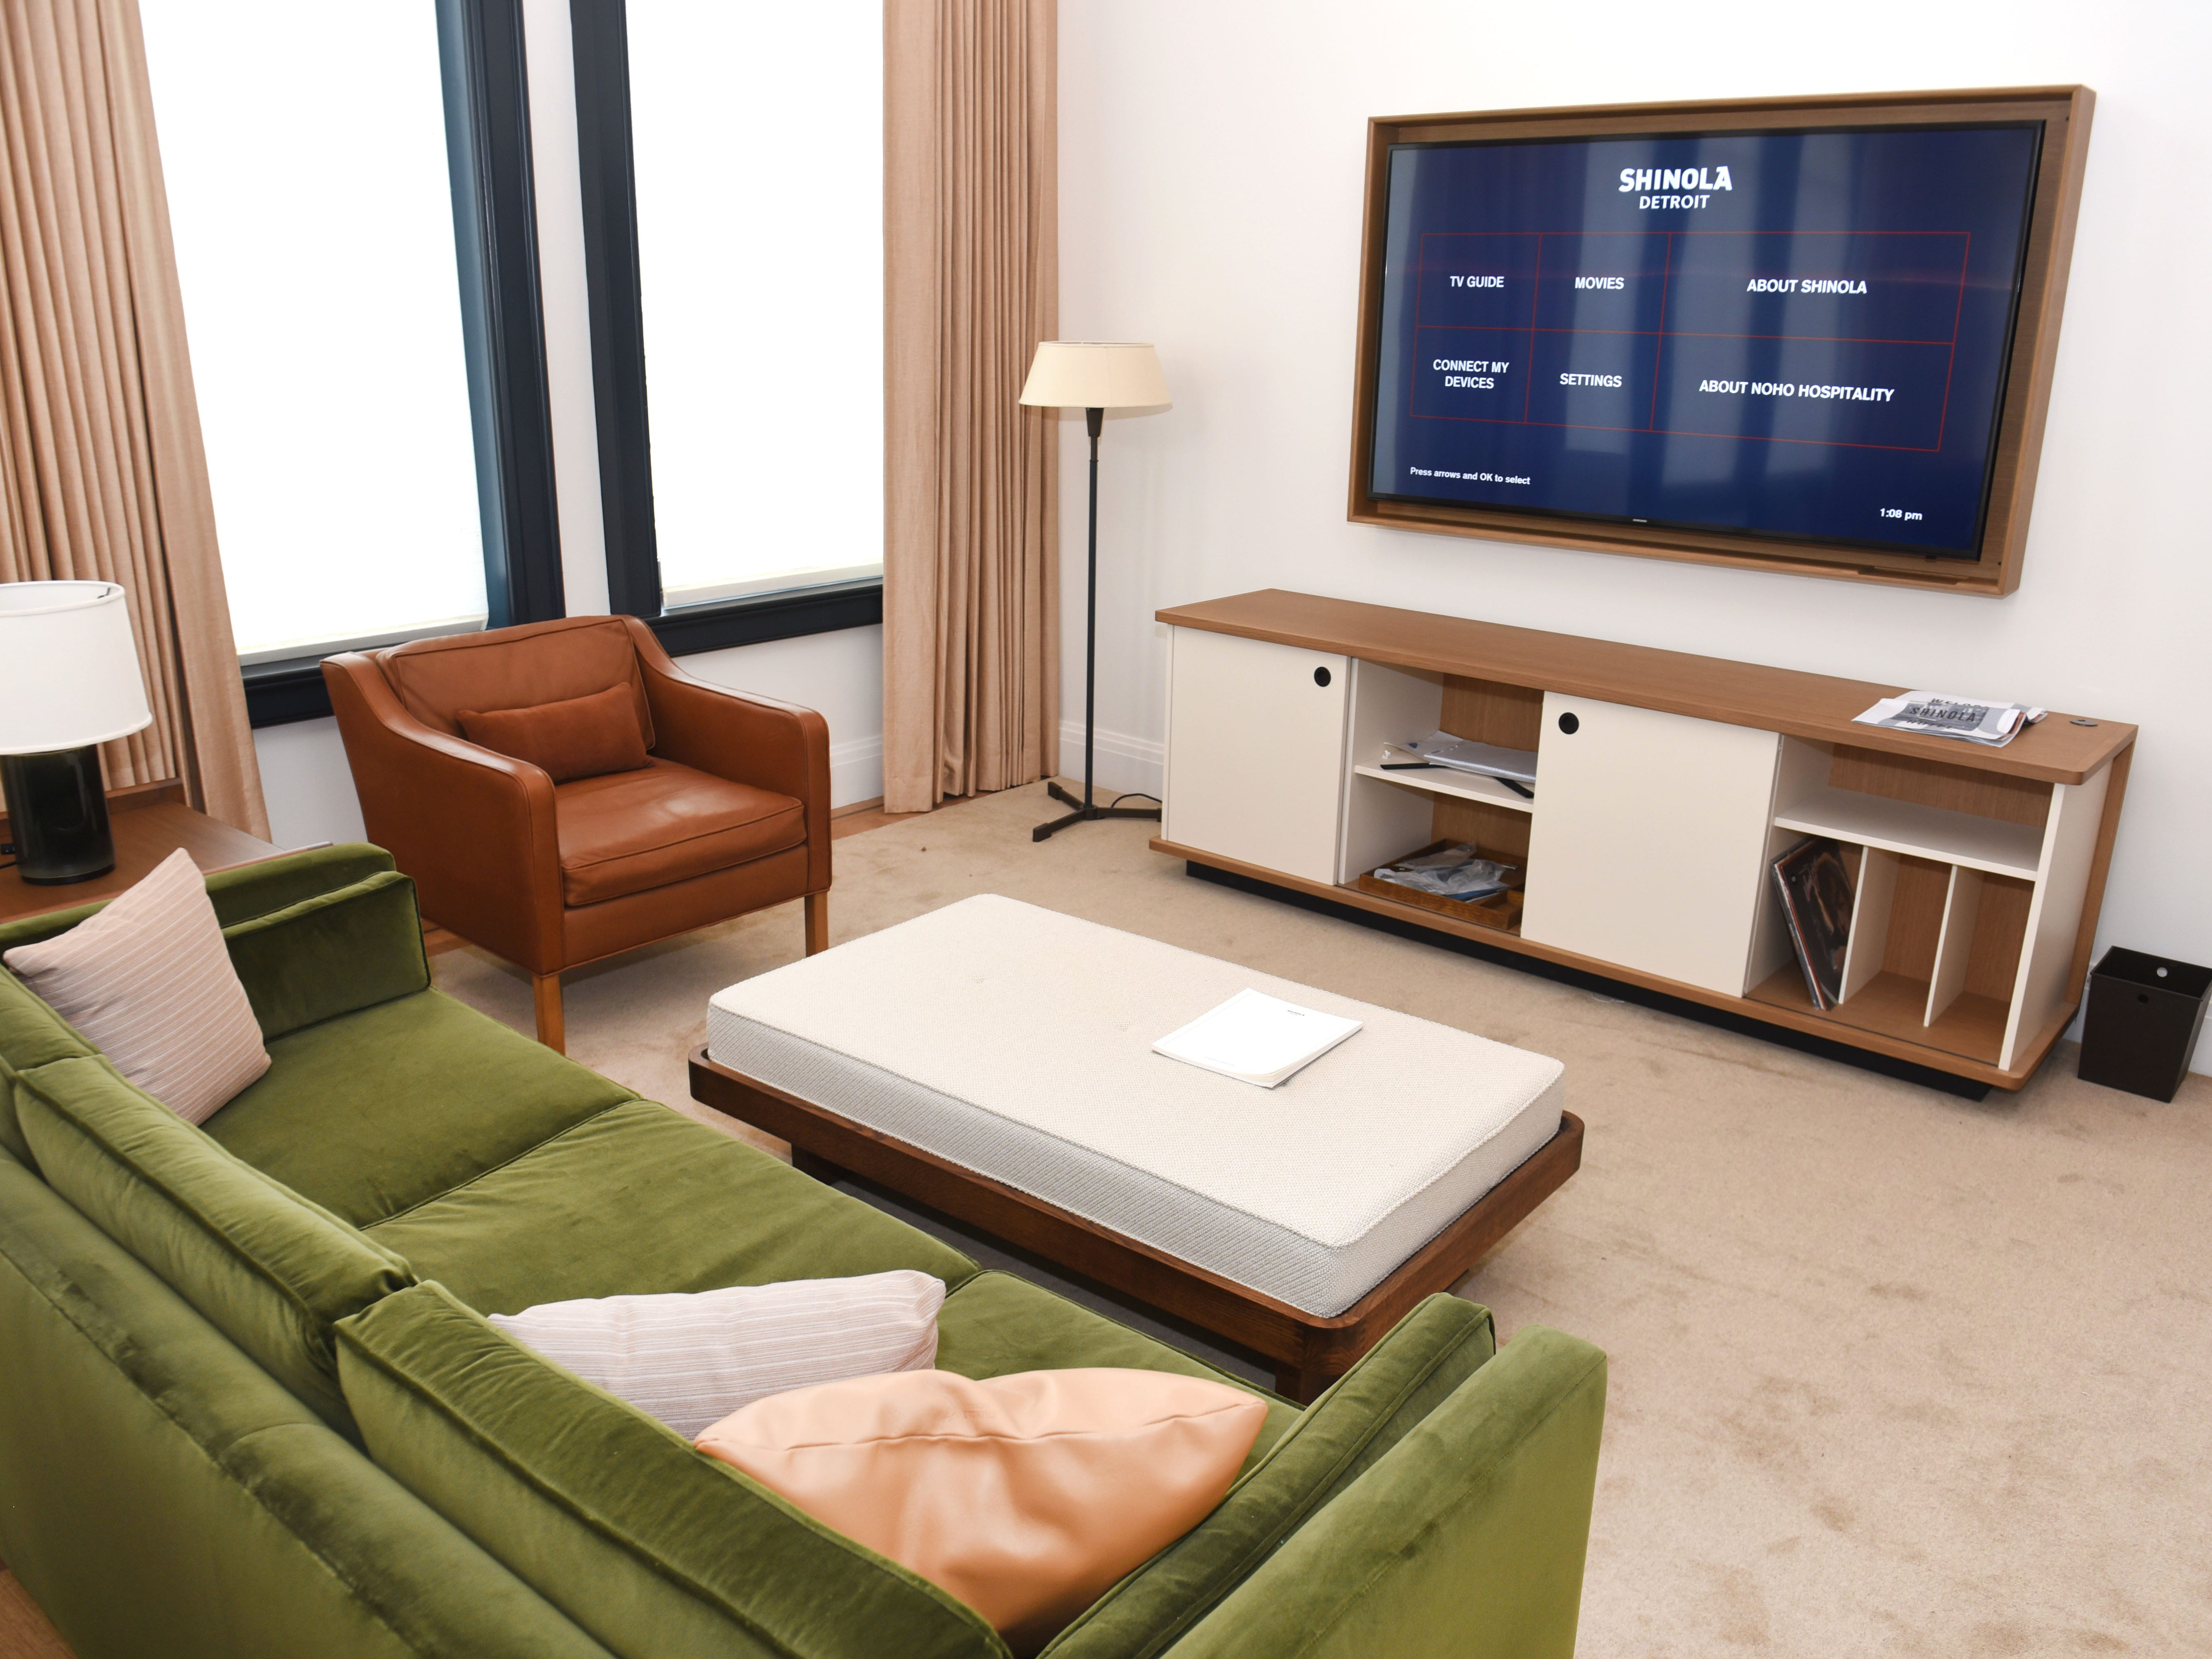 This guest suite includes a large television mounted on the wall.